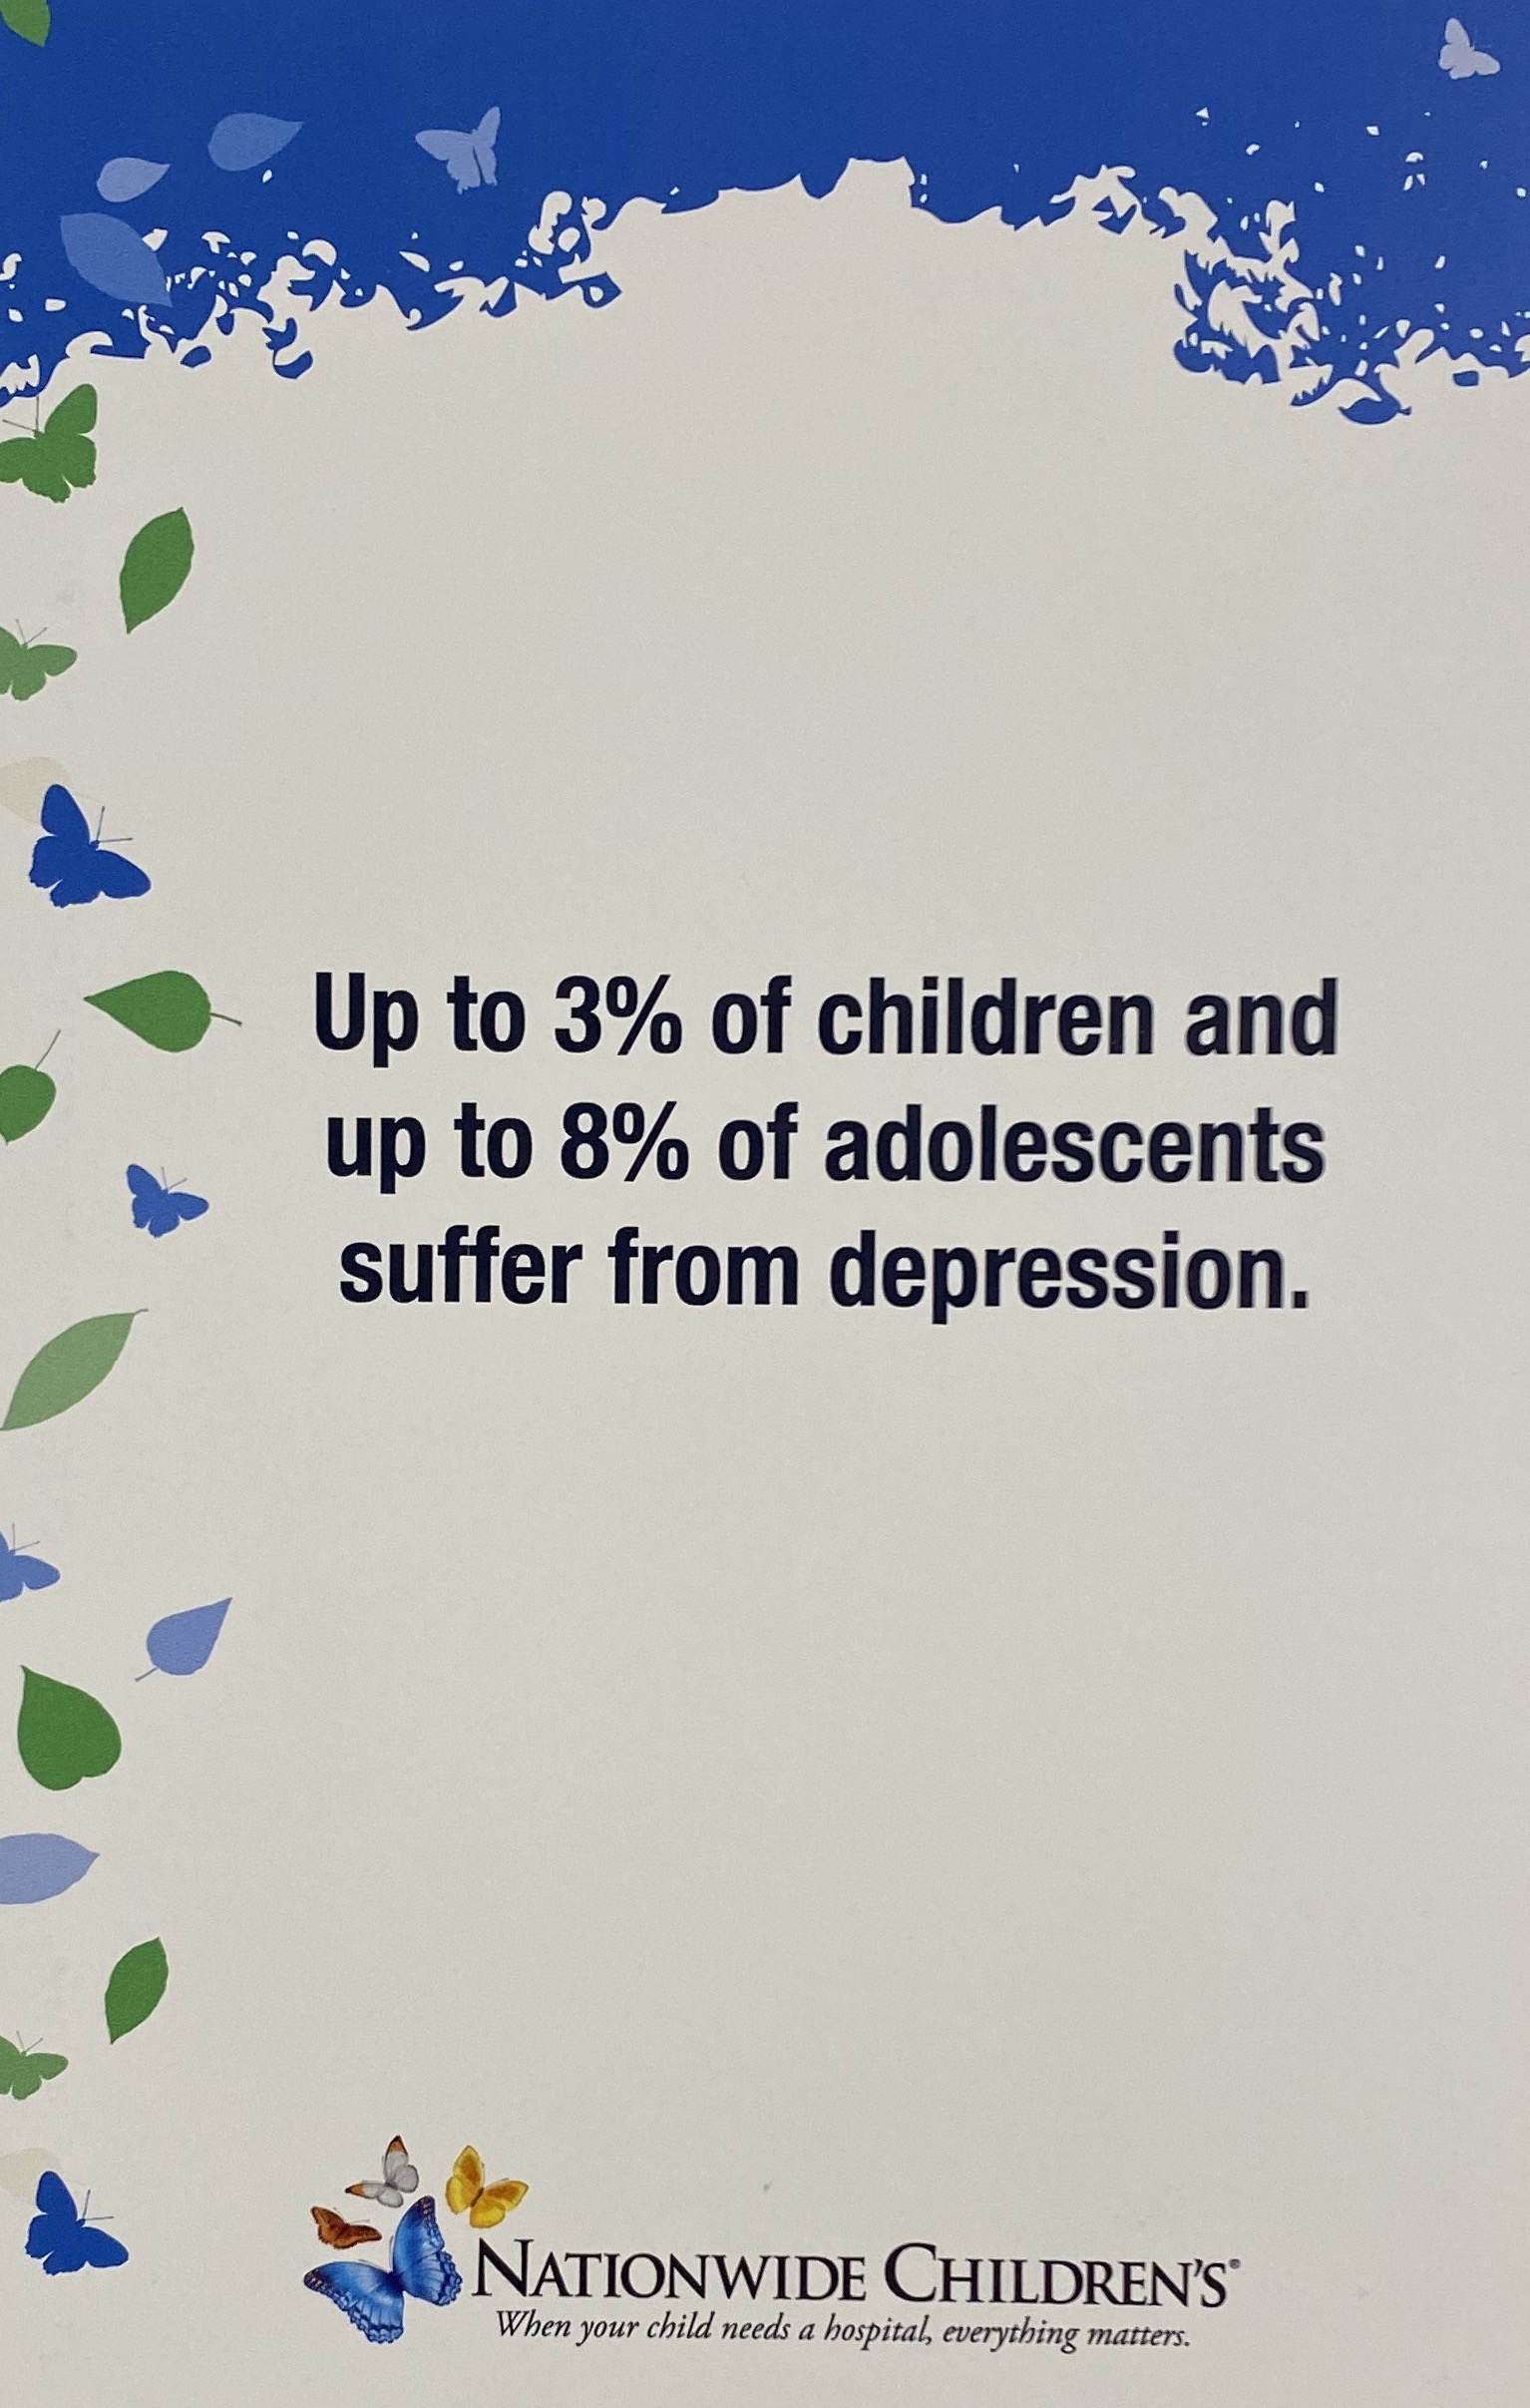 Up to 3% of children and up to 8% of adolescents suffer from depression.